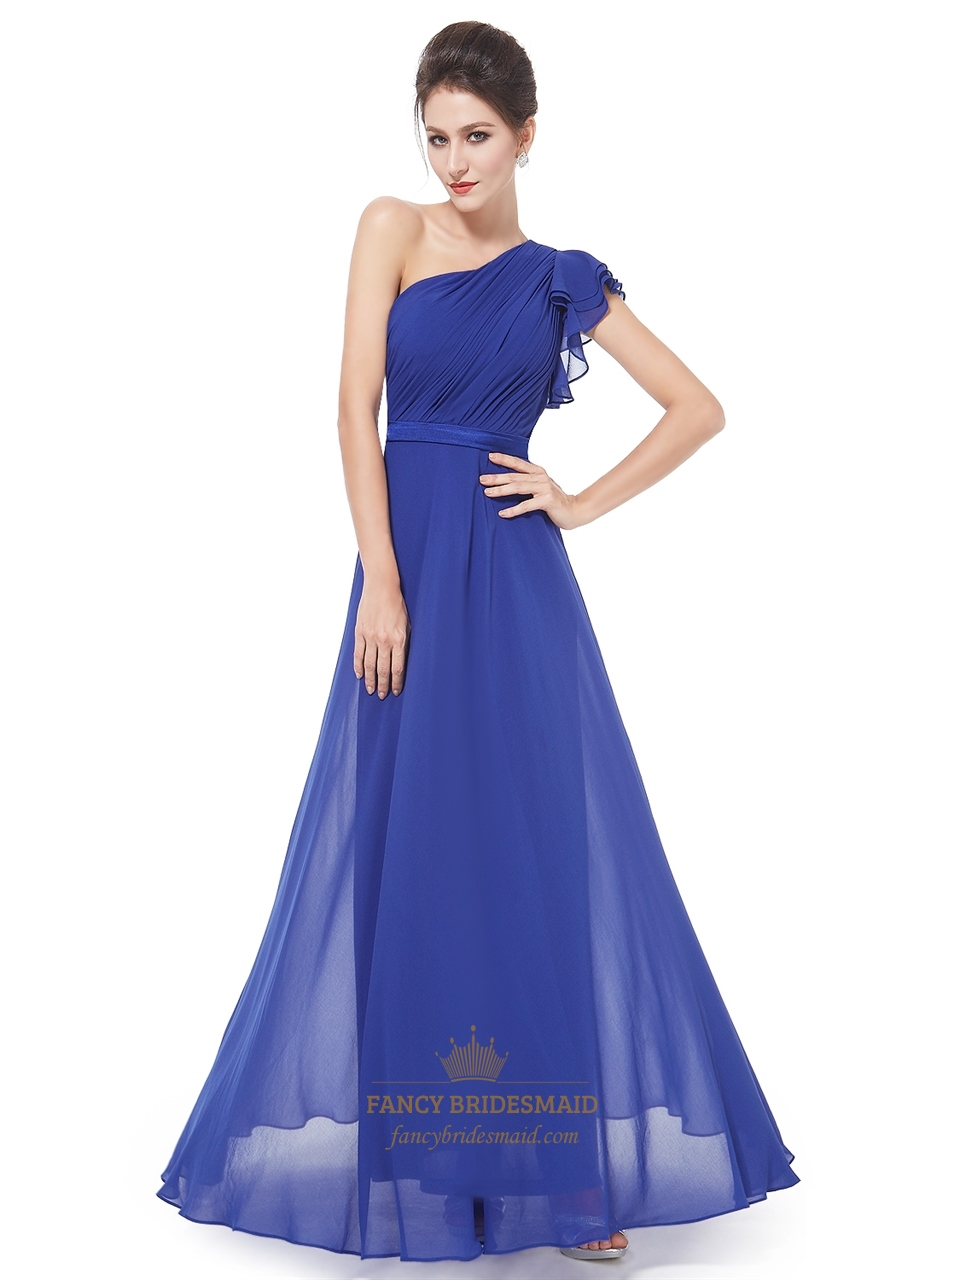 Royal Blue Bridesmaid Dresses - Fancy Bridesmaid Dresses